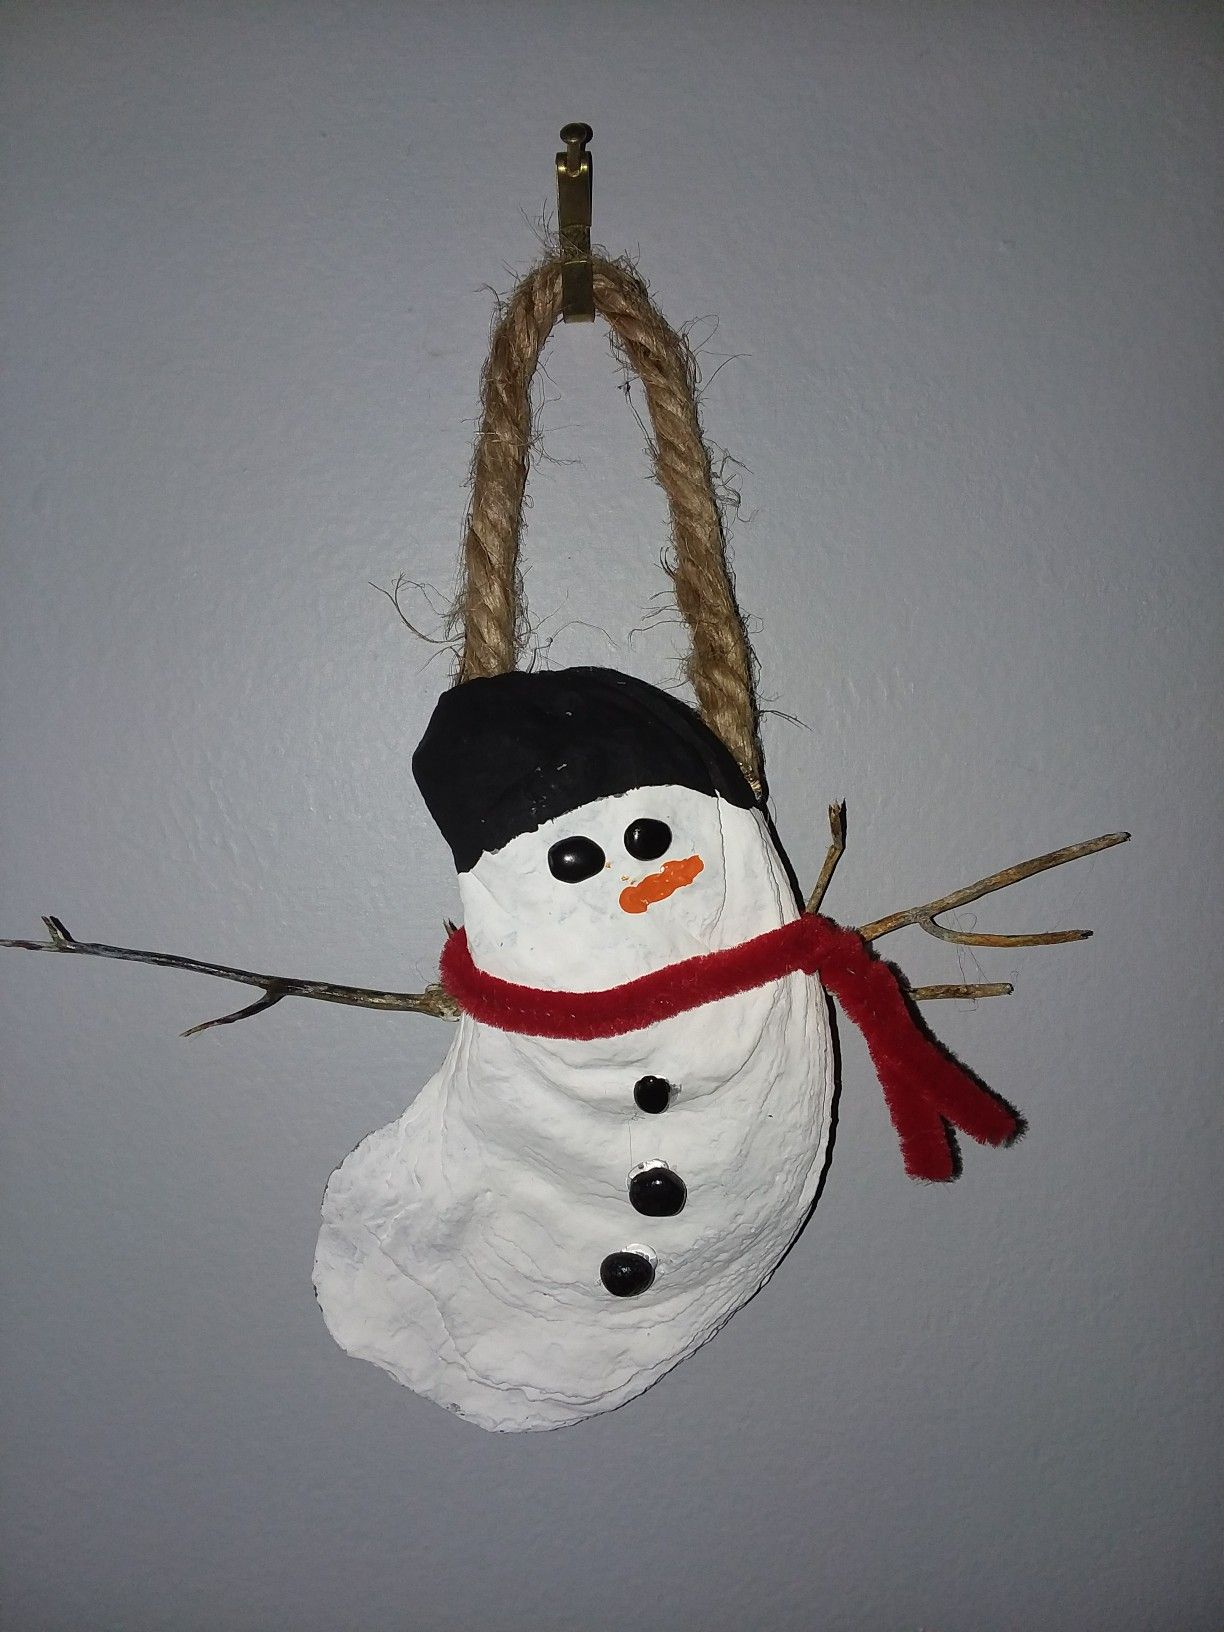 Seashell snowman (With images) Christmas decorations